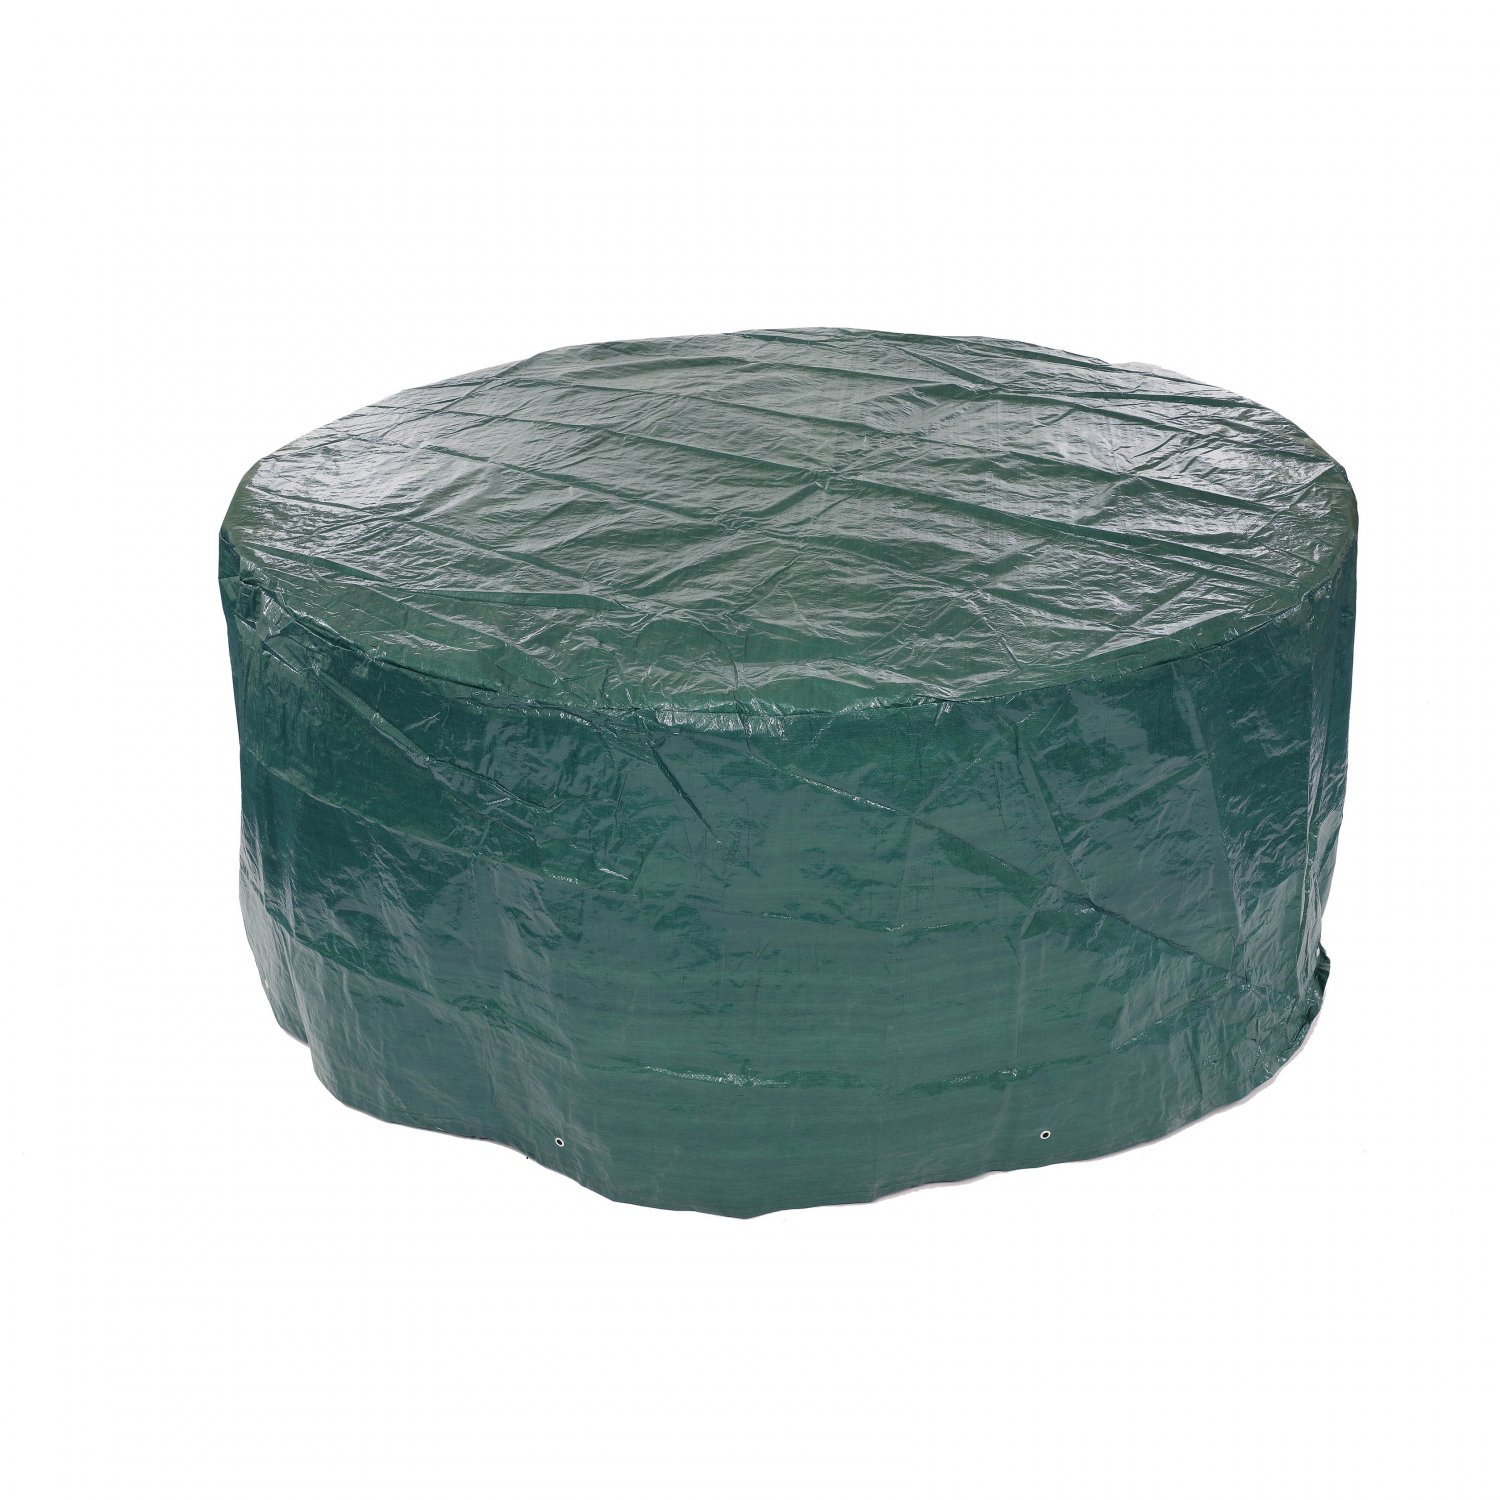 waterproof garden patio furniture round table and chair cover